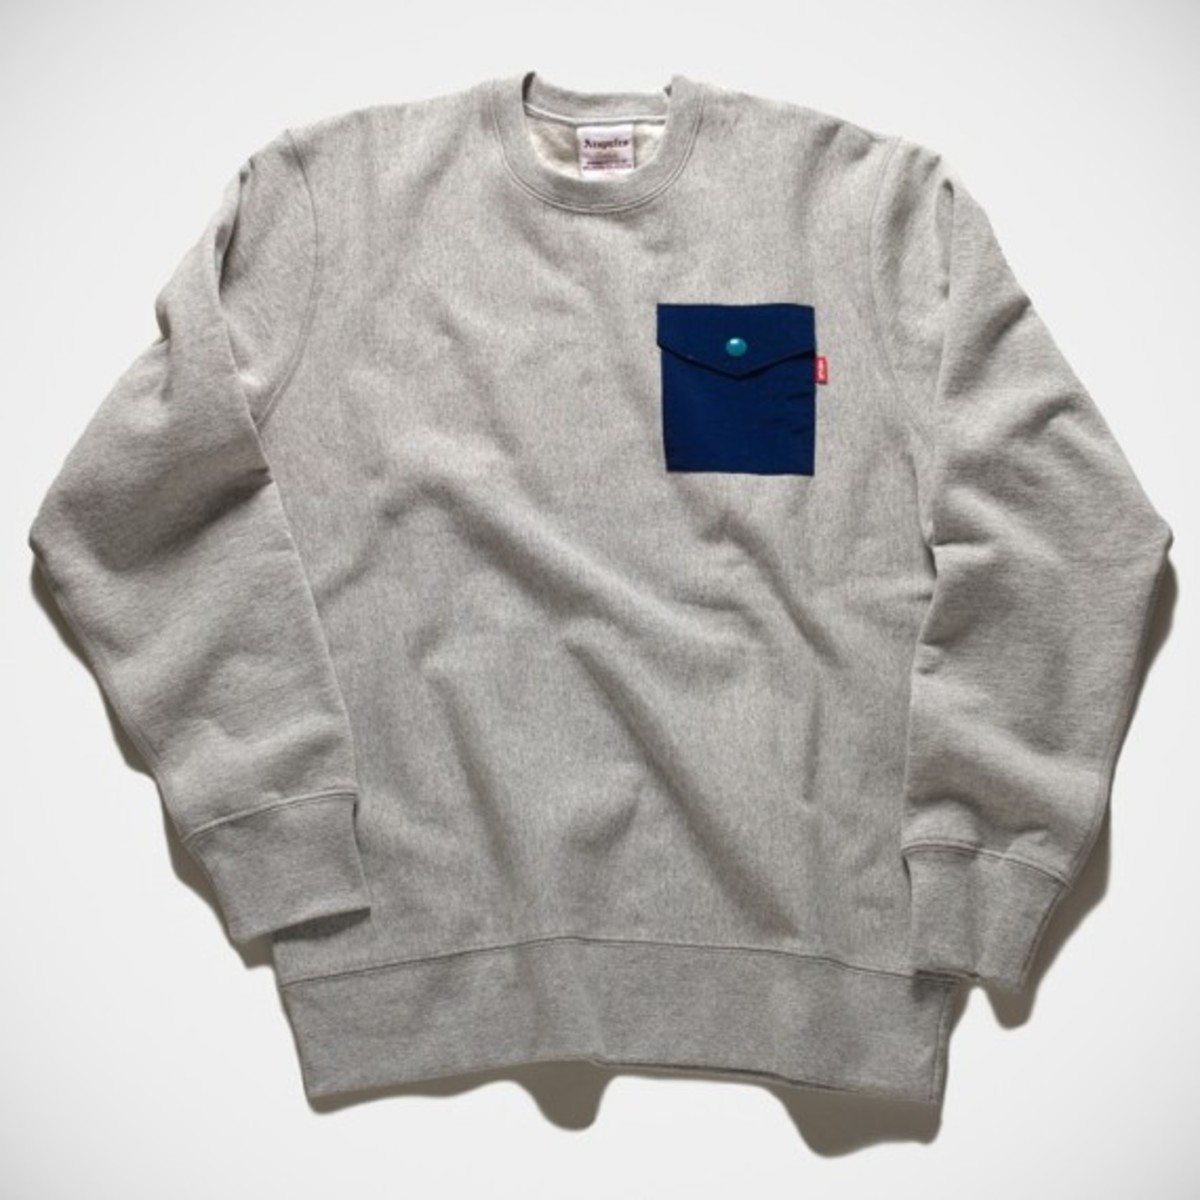 acapulco-gold-spring-2014-collection-delivery-1-18